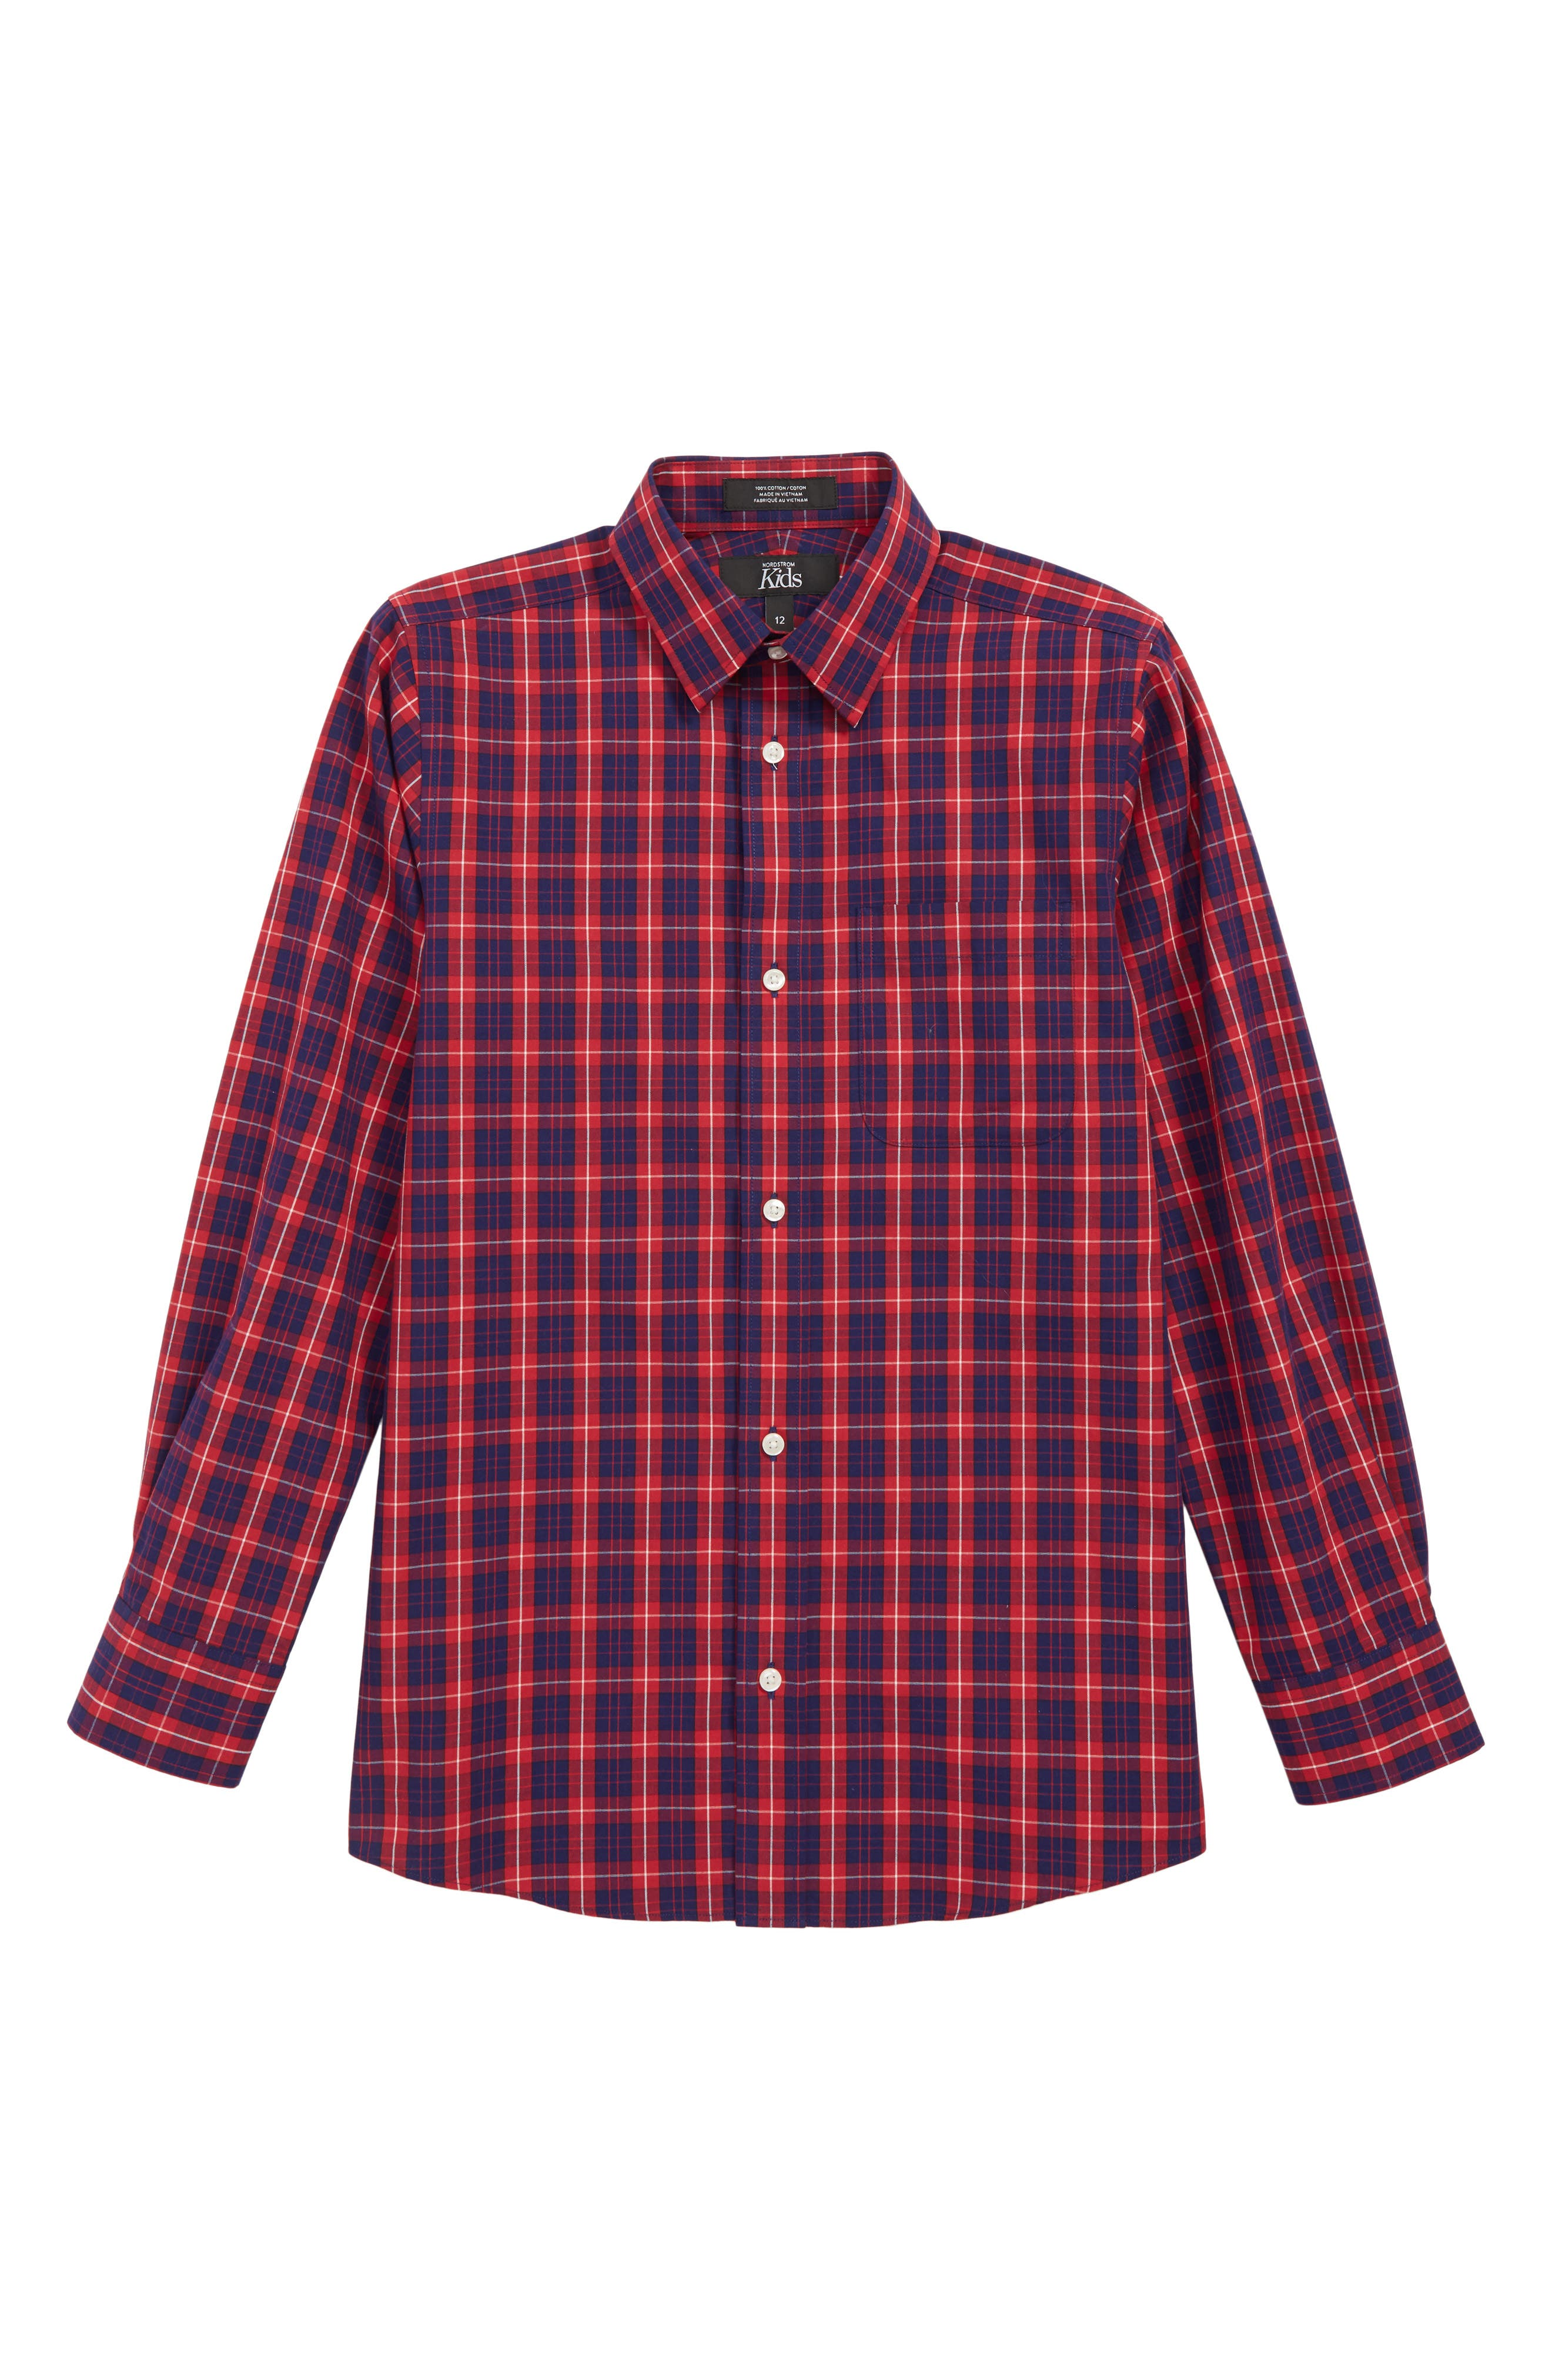 Tartan Dress Shirt,                         Main,                         color, RED SAGE- NAVY TARTAN